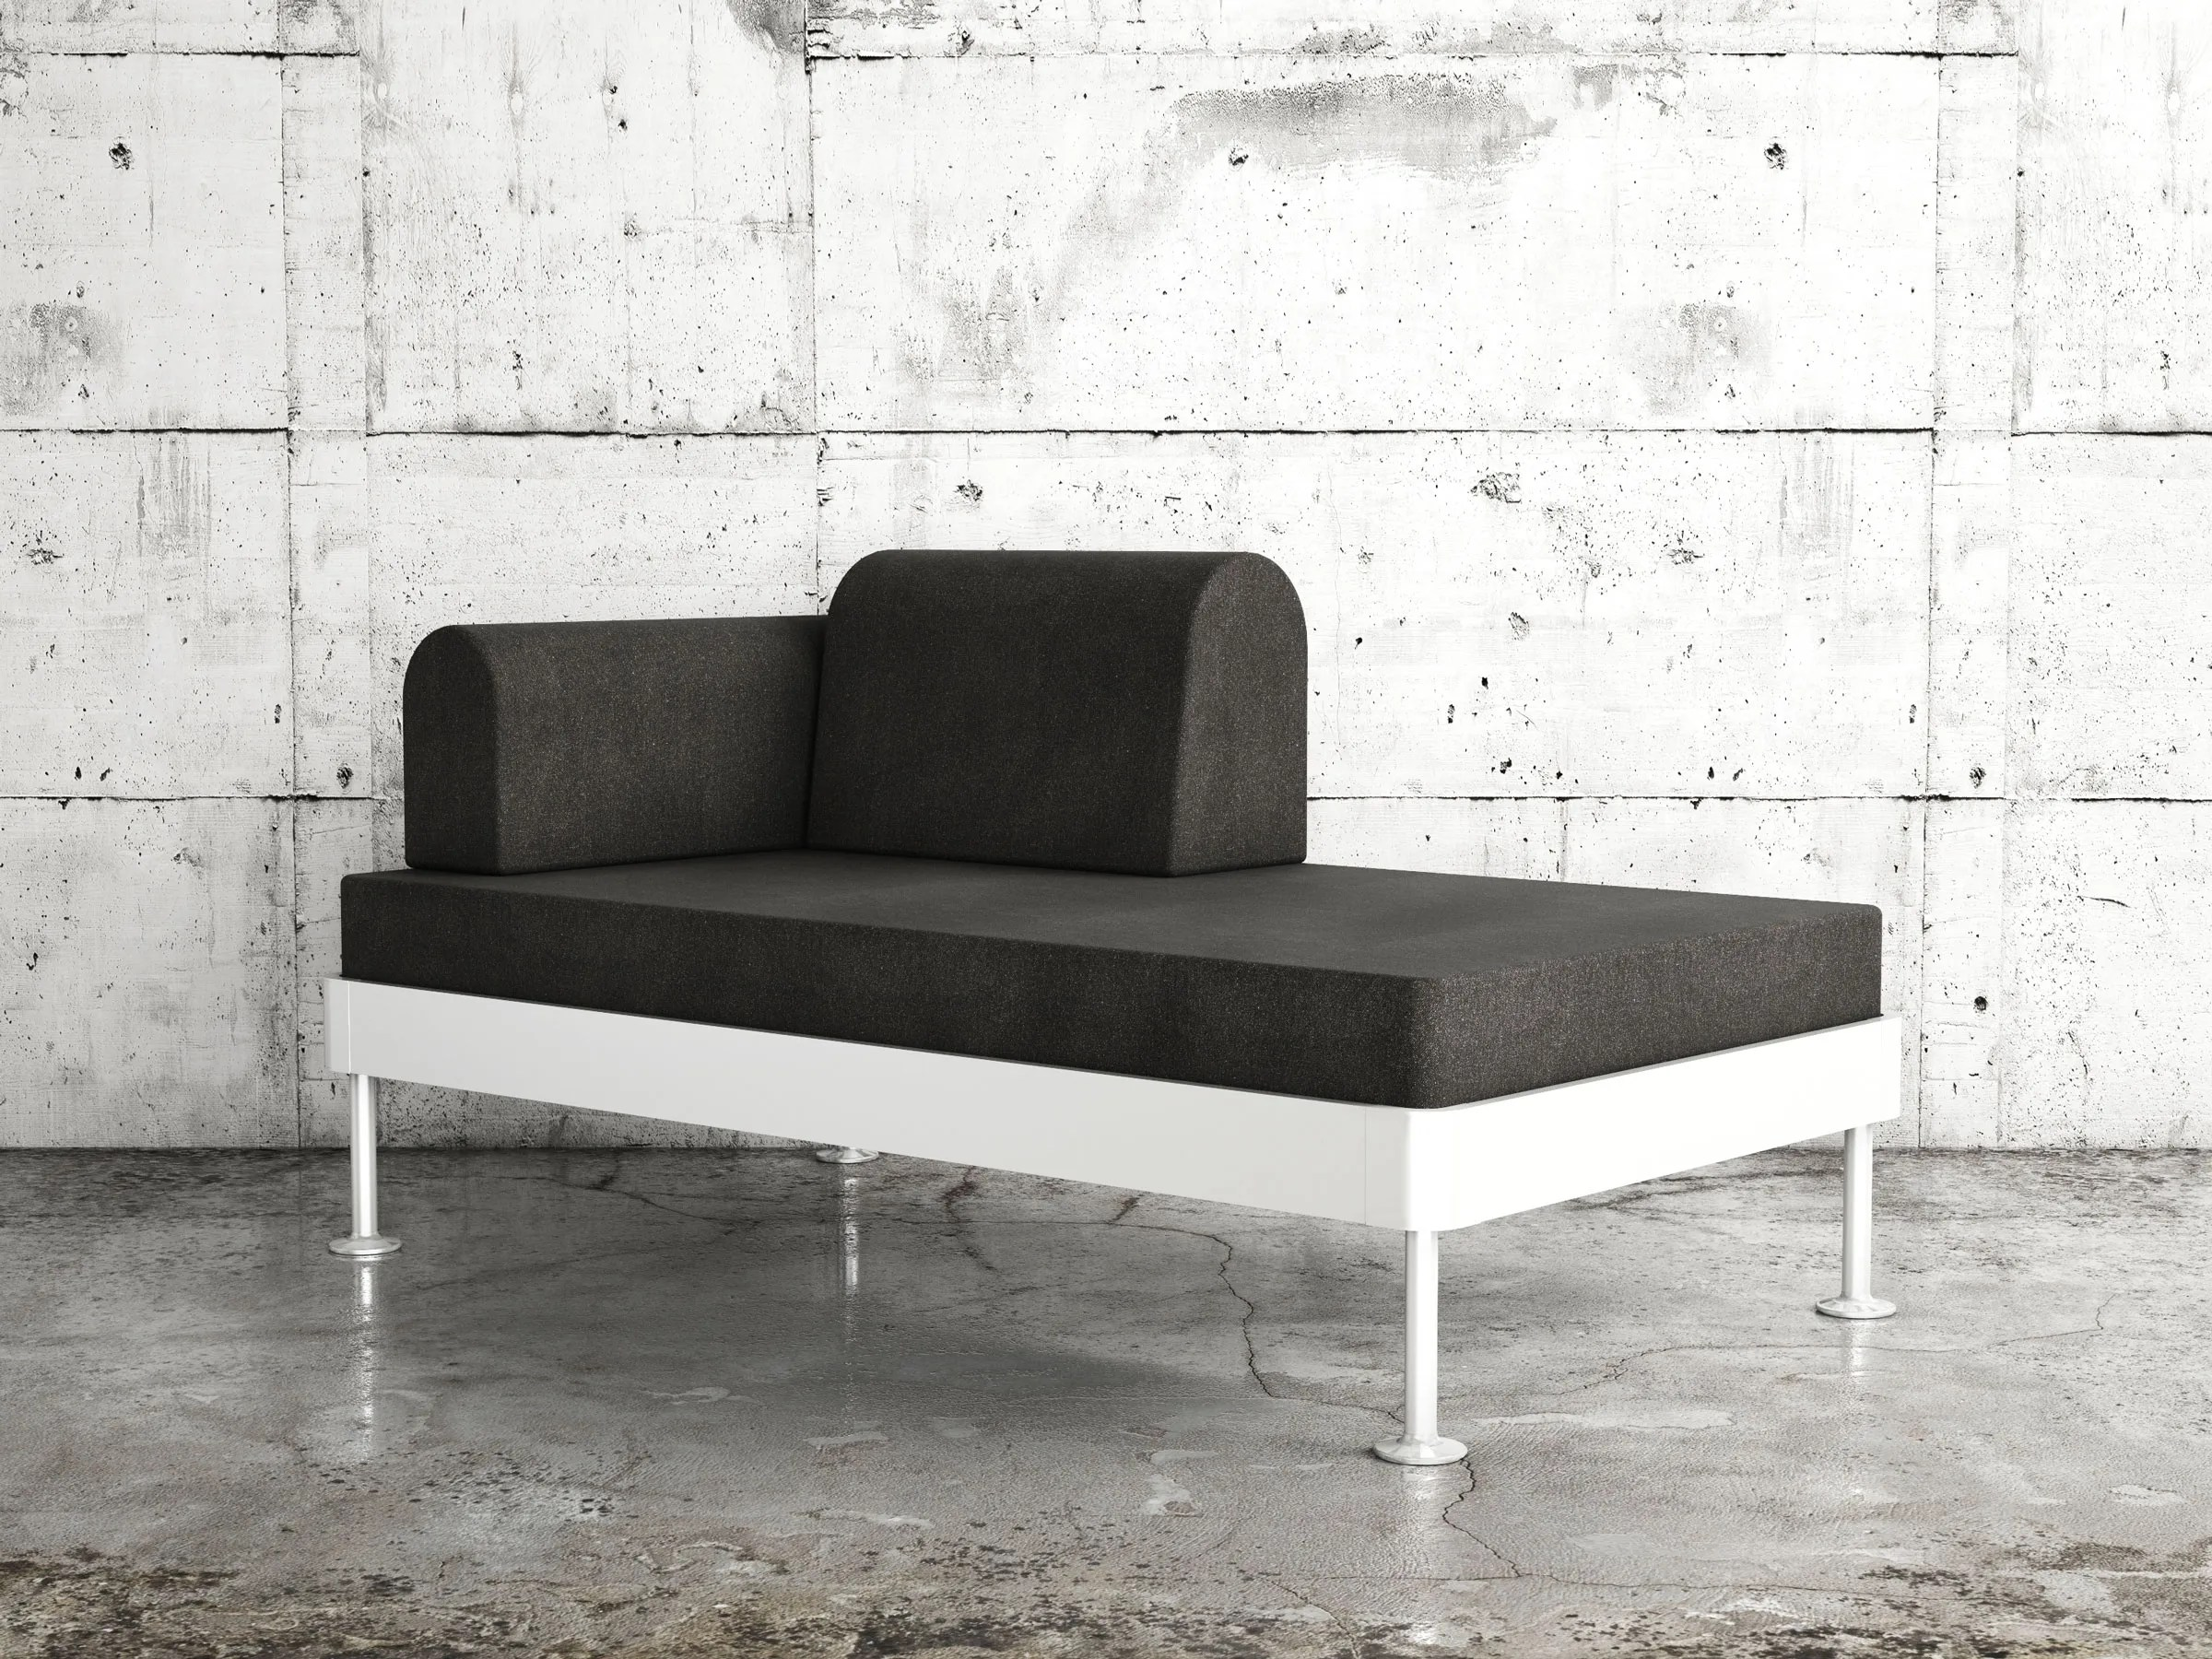 Ikea Online Bettsofa Ikea S Delaktig Bed Is The Future Of Ikea Hacking Says Ikea Wired